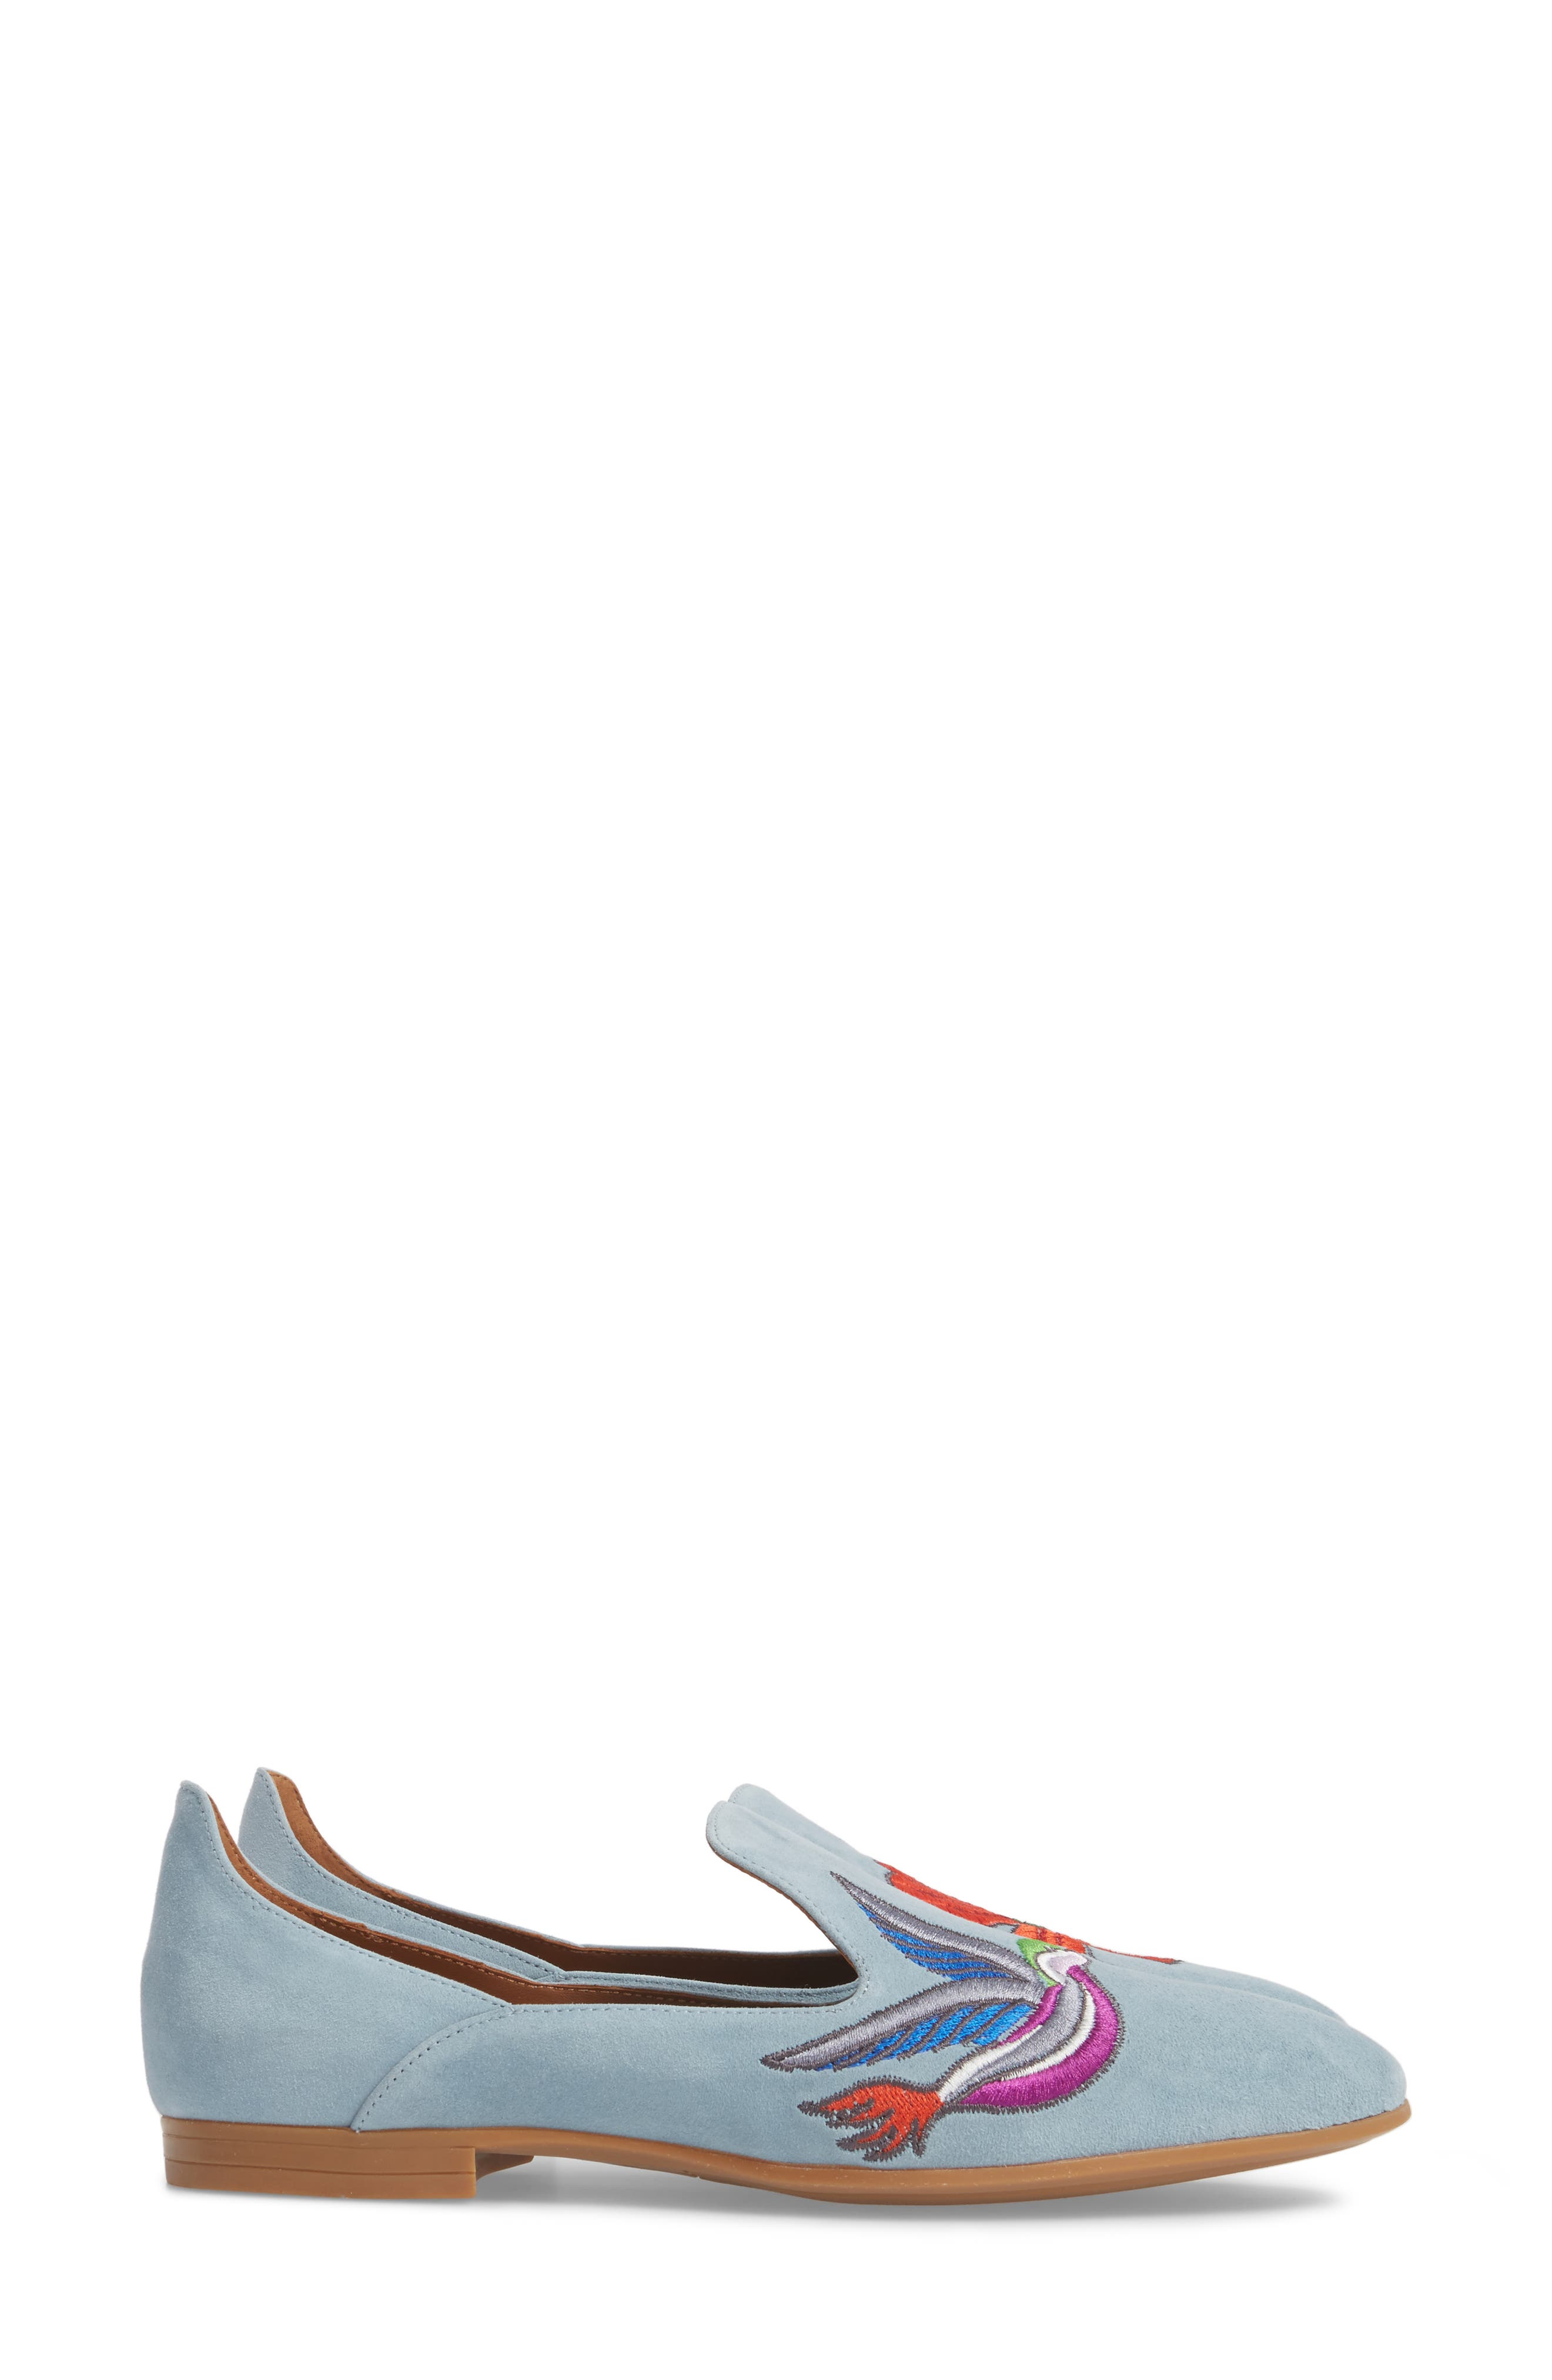 Emmaline Embroidered Loafer,                             Alternate thumbnail 4, color,                             Chambray